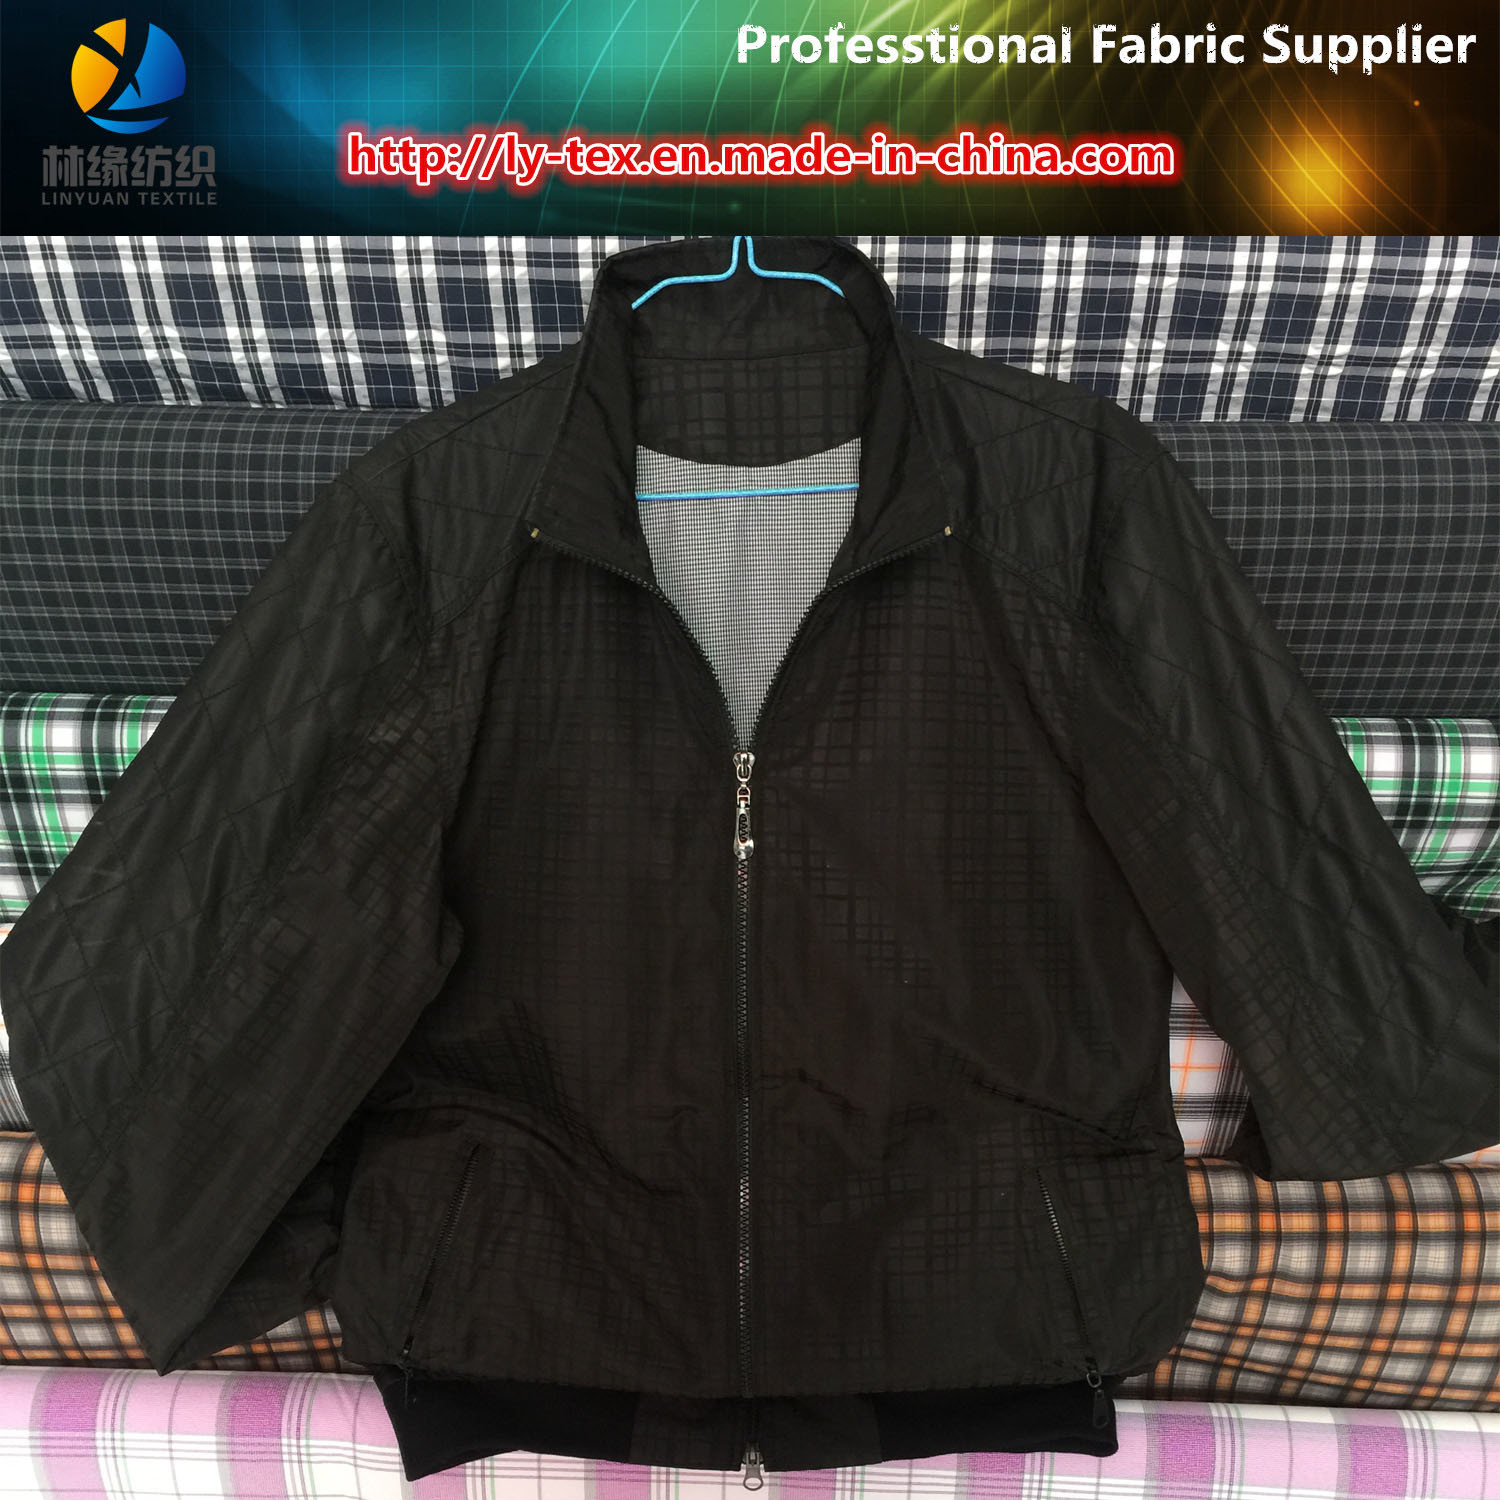 New Polyester Twill Check Printed PU Coated Fabric for Men Garment, Polyester Fabric Supplier pictures & photos